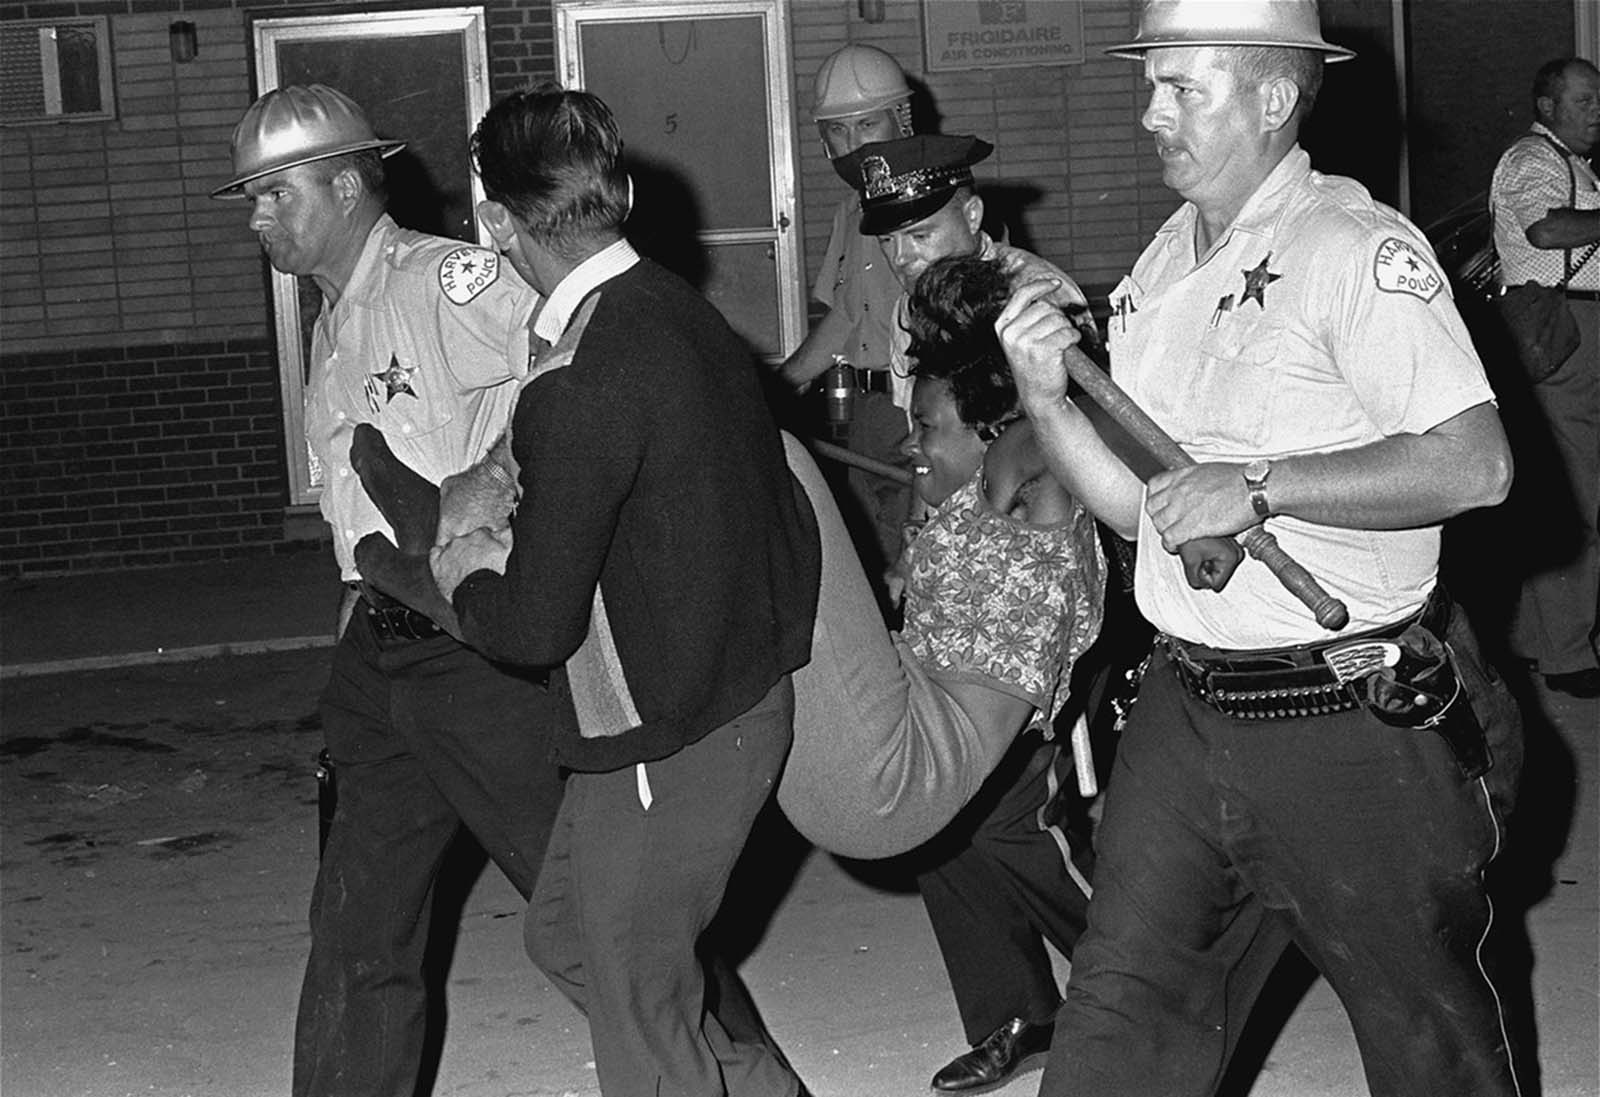 A woman who stayed at the riot scene in Dixmoor, IL, August 17, 1964, is carried to a police van. Police had ordered all persons indoors in the race riot area. Those who didn't, were taken into custody in Dixmoor, a Chicago suburb. More than twelve were arrested. A number of large cities across the eastern U.S. experienced race-related riots during the summer of 1964.